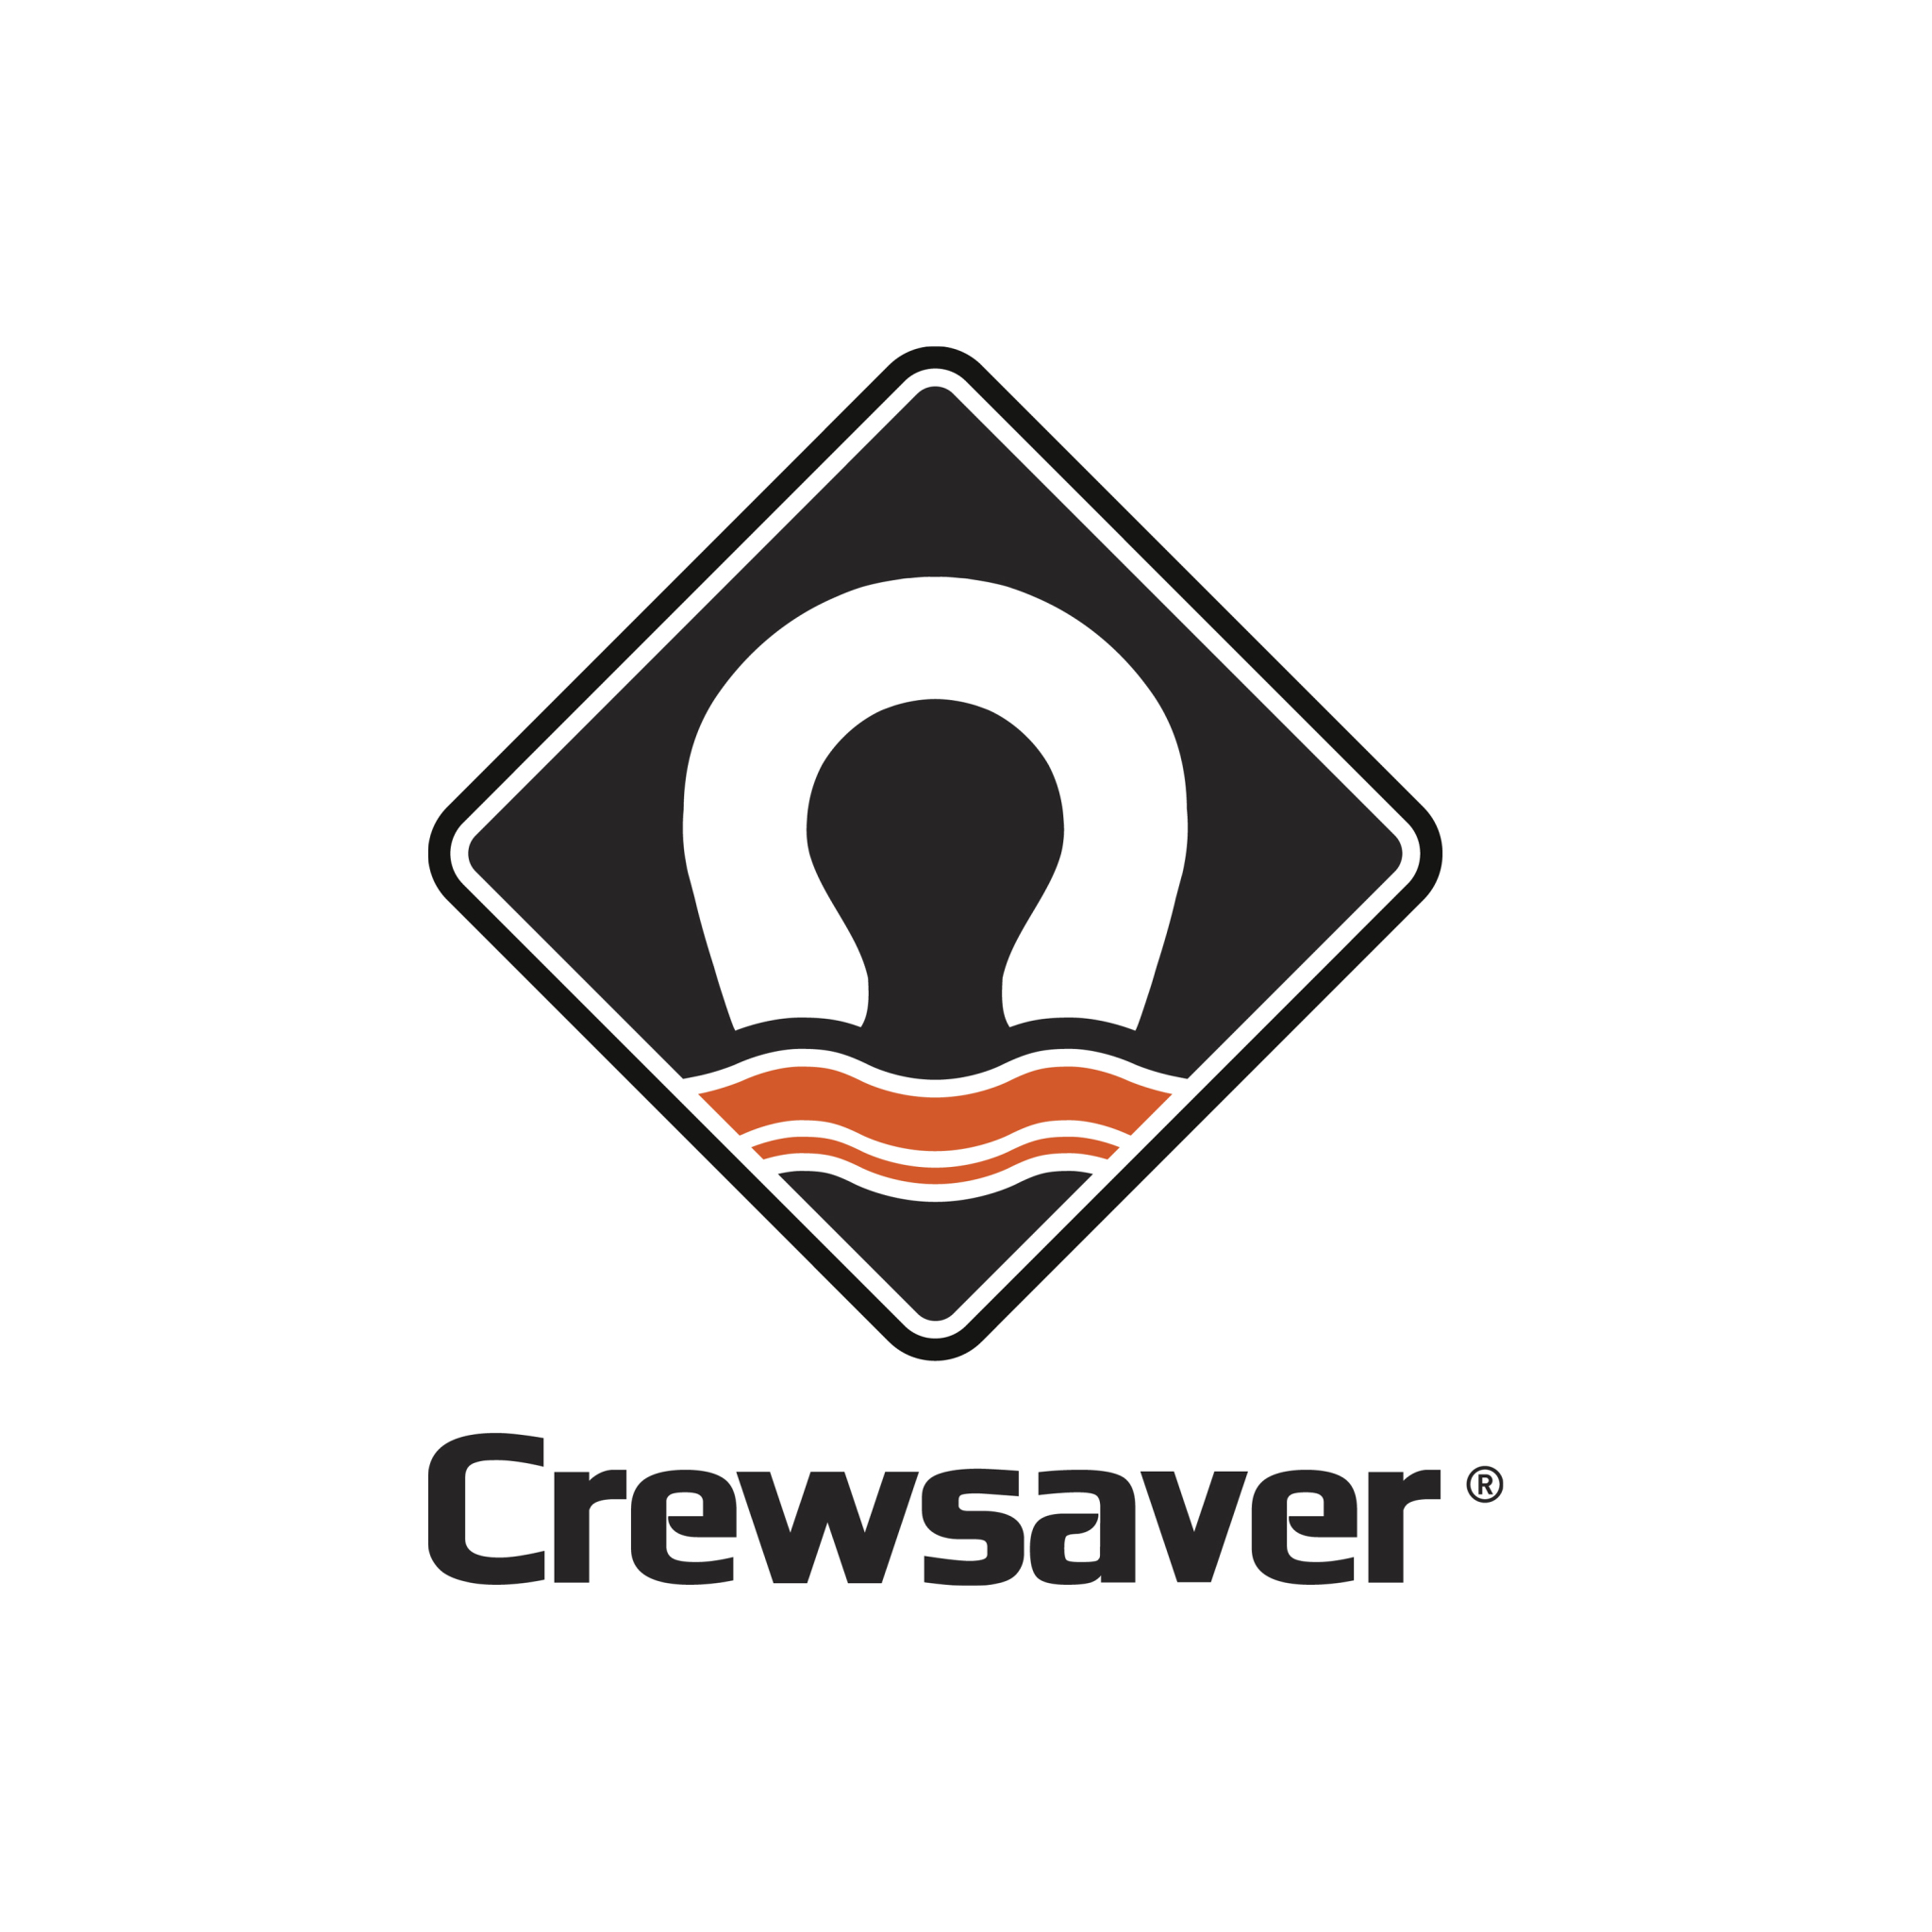 Crewsaver lifesaving